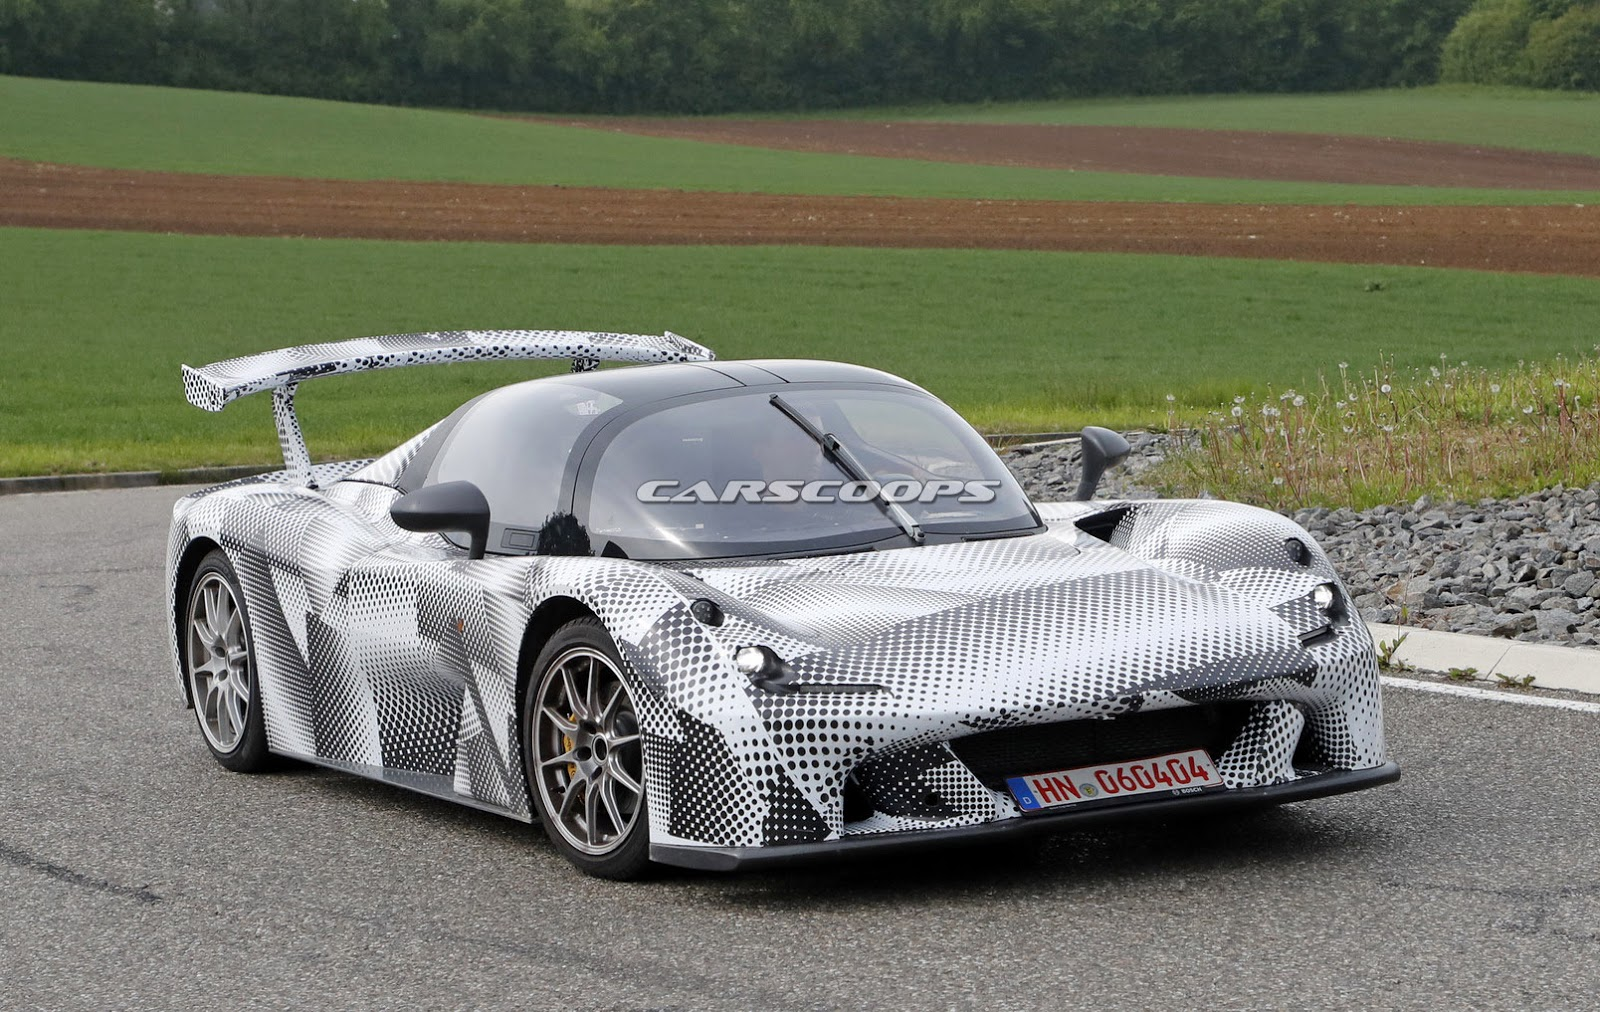 Dallara S New Supercar Shaping Up To Be The Stuff Of